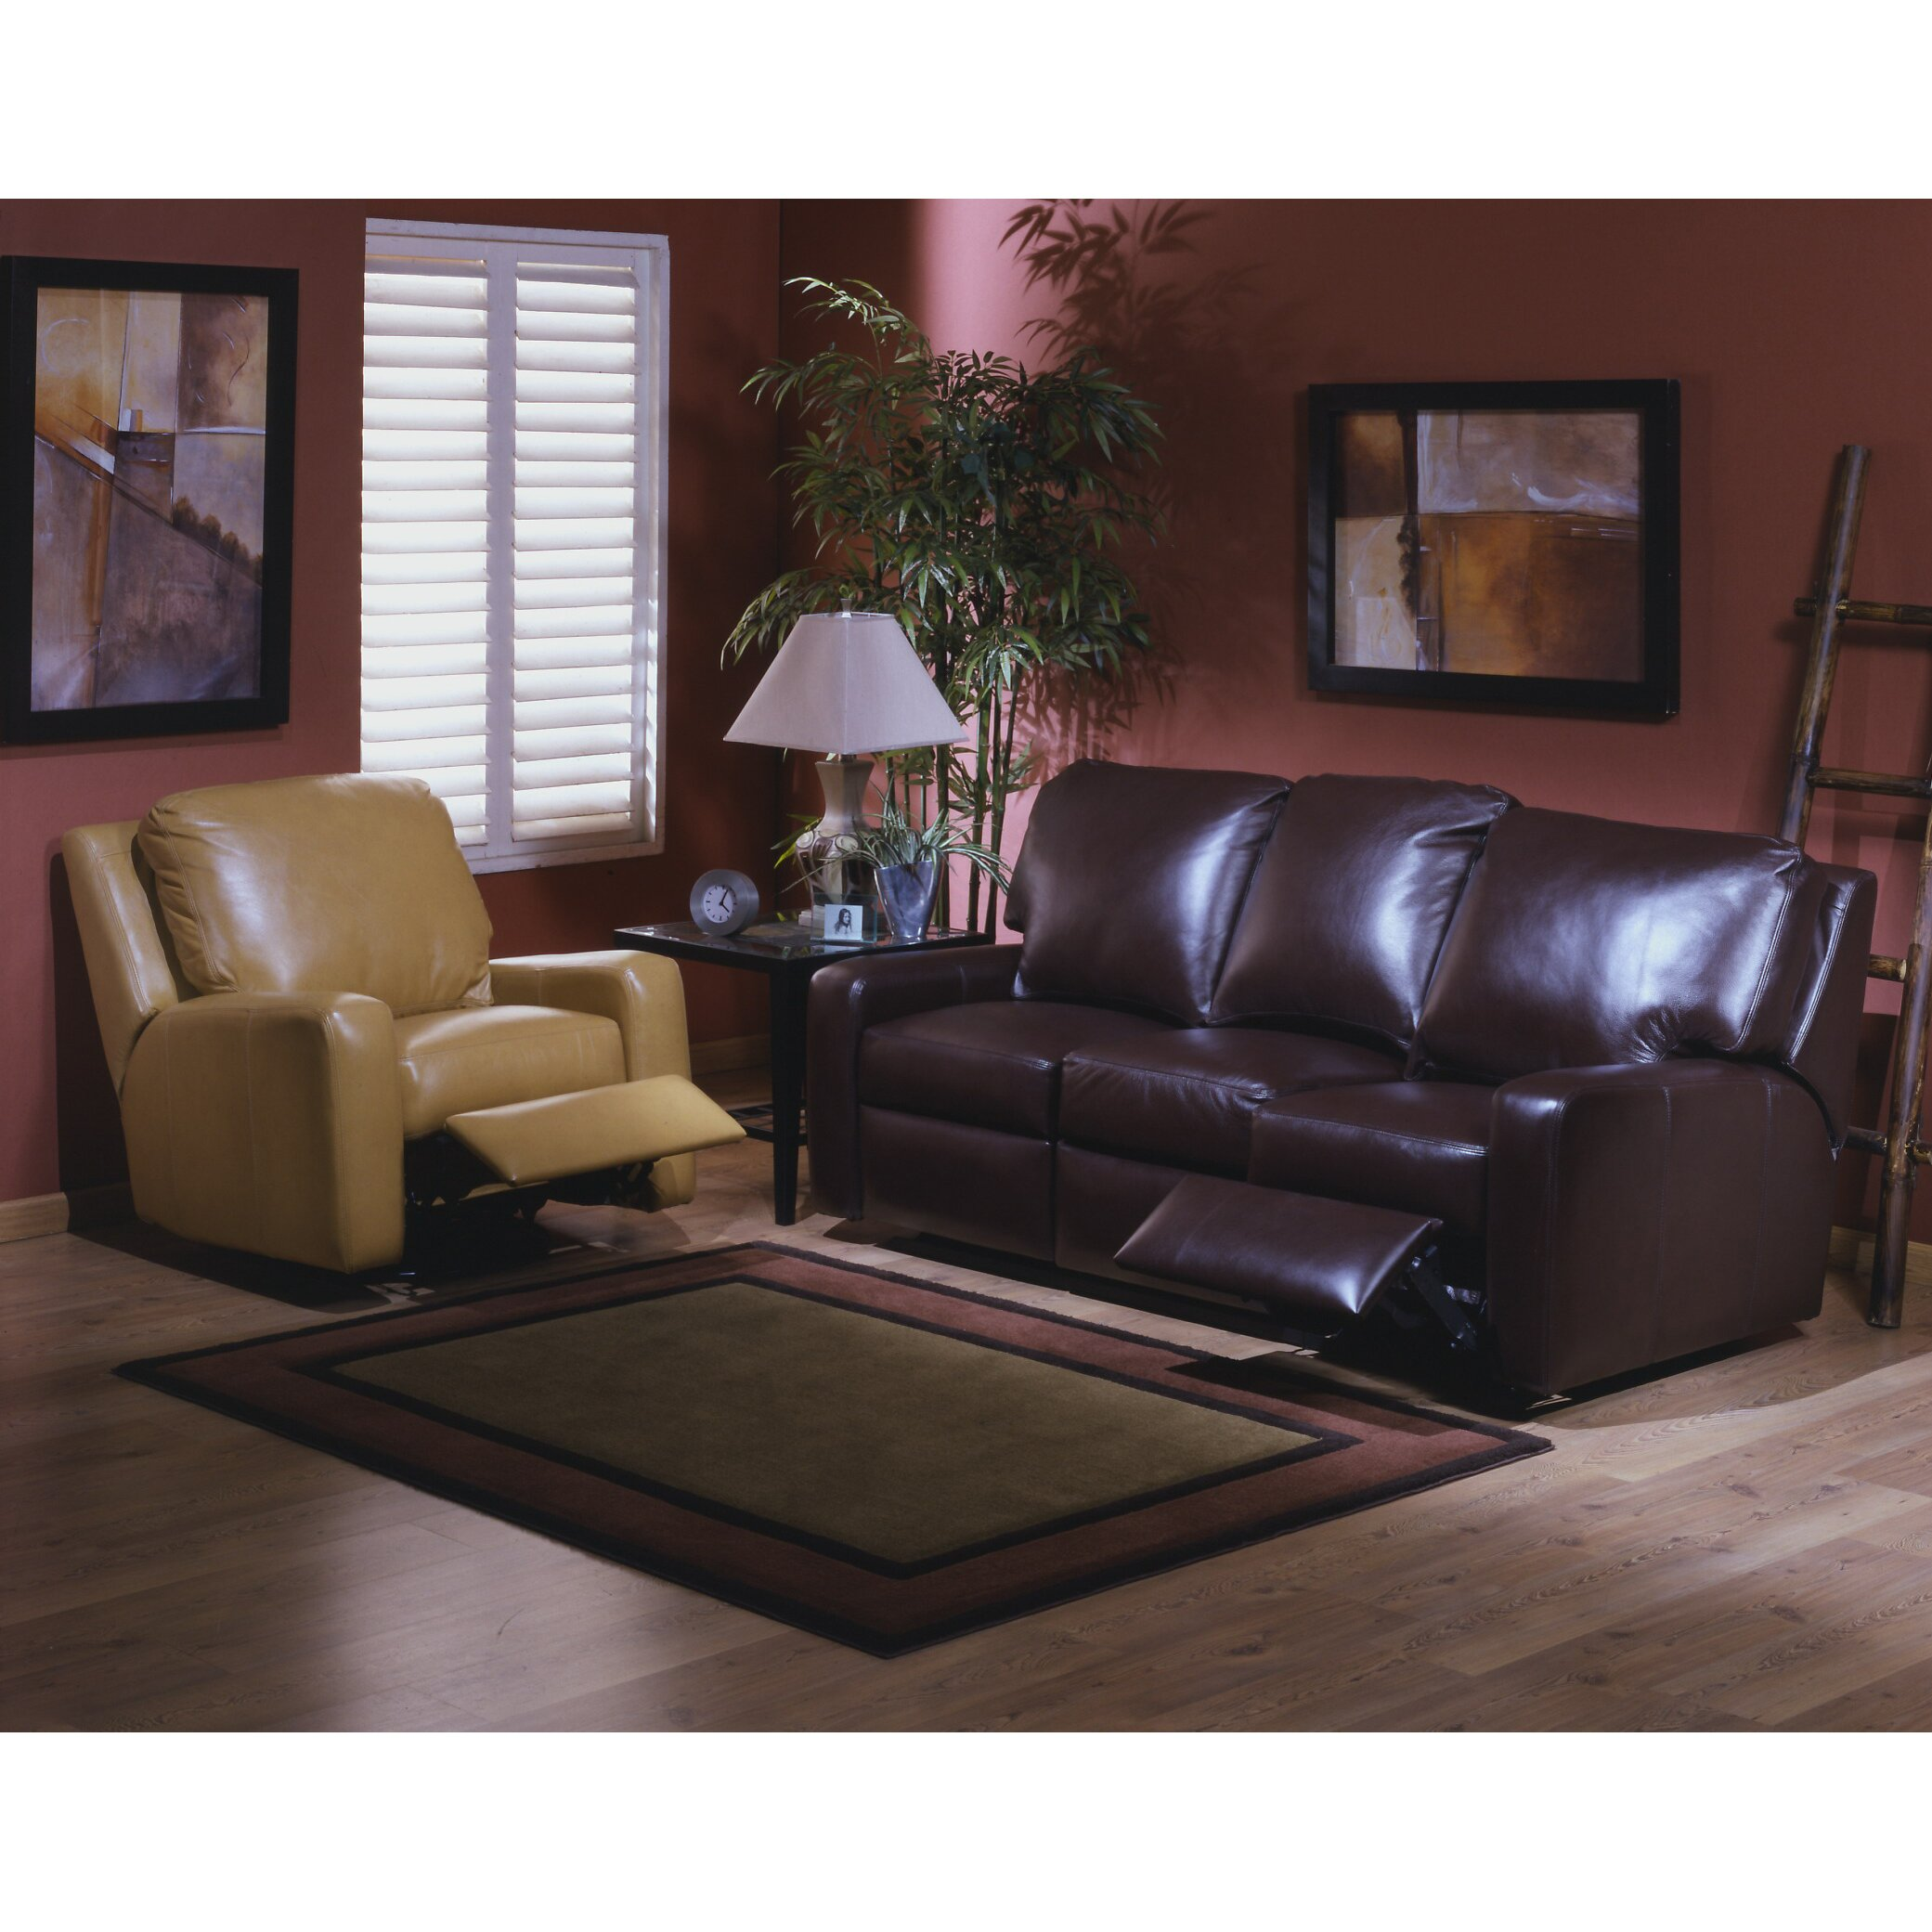 Omnia leather mirage 4 seat sofa leather living room set for Leather living room sets